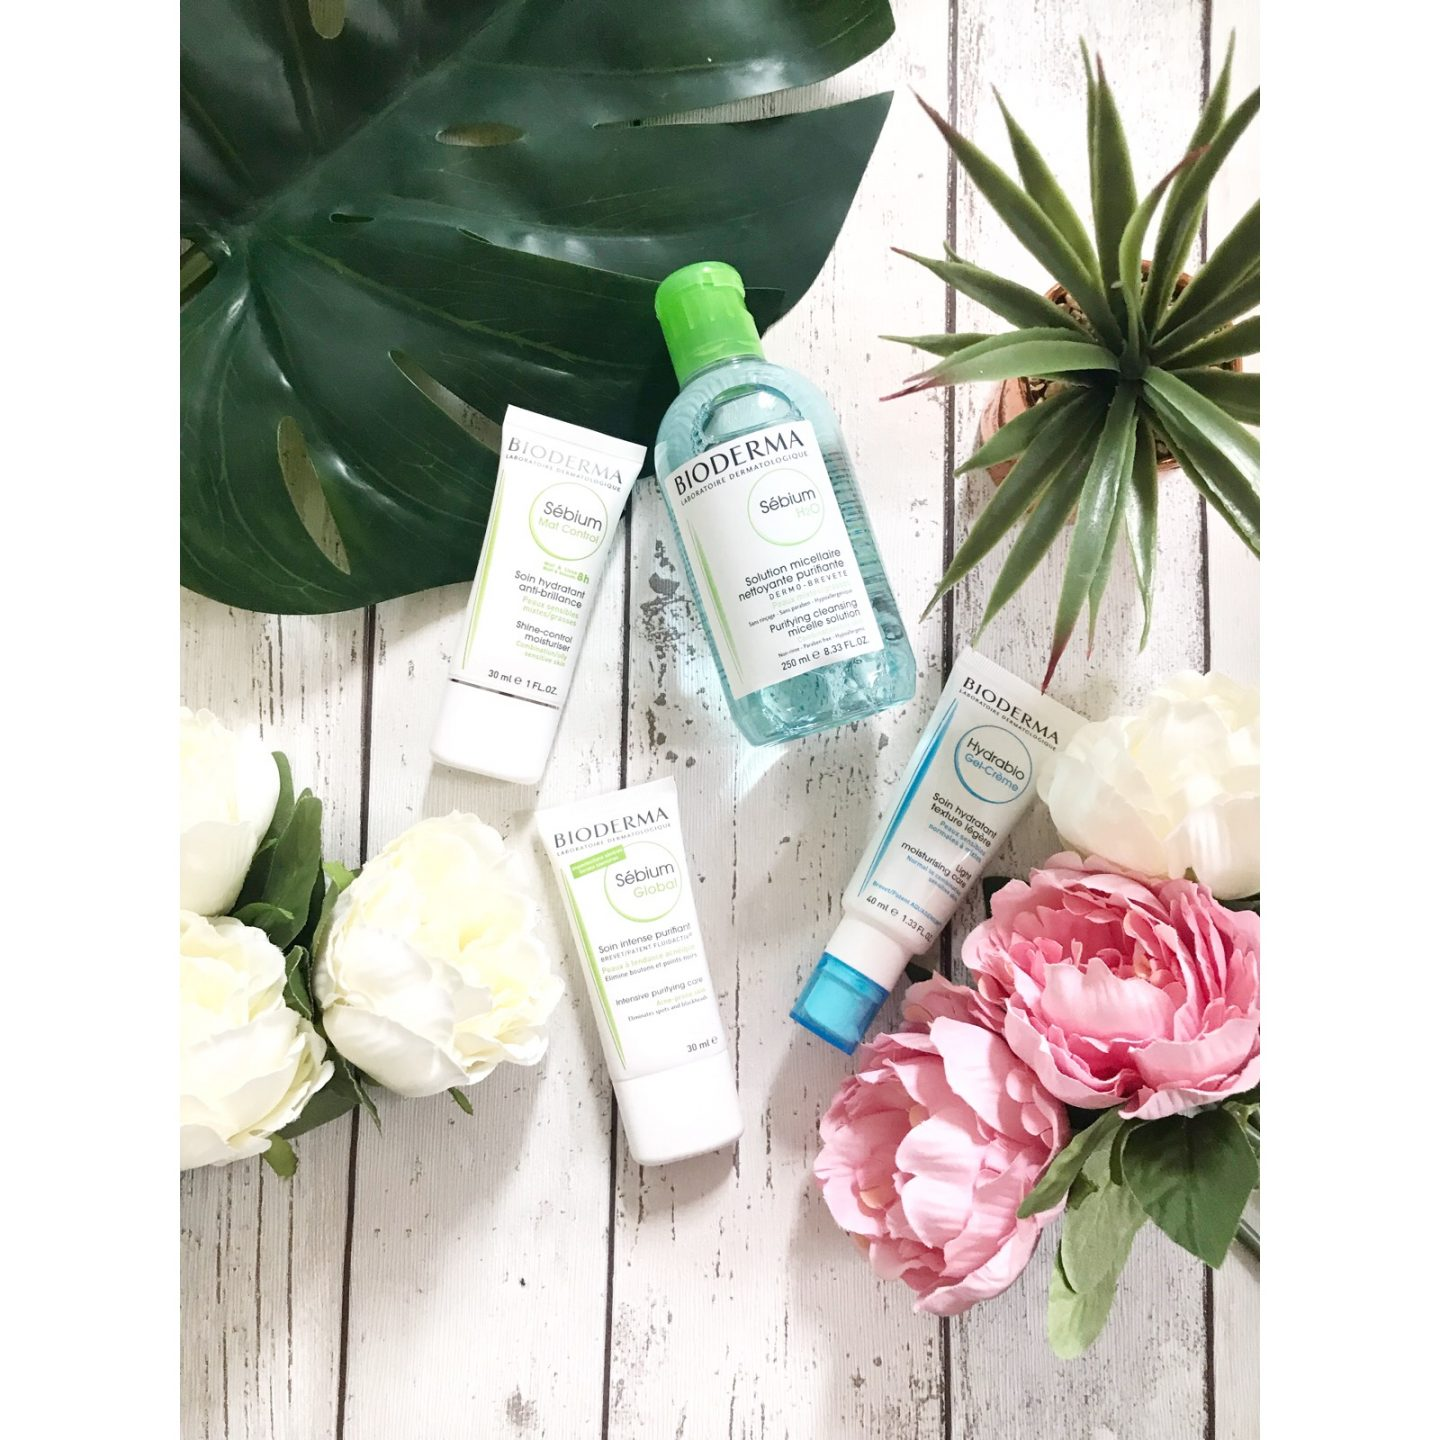 Bioderma | First Impressions